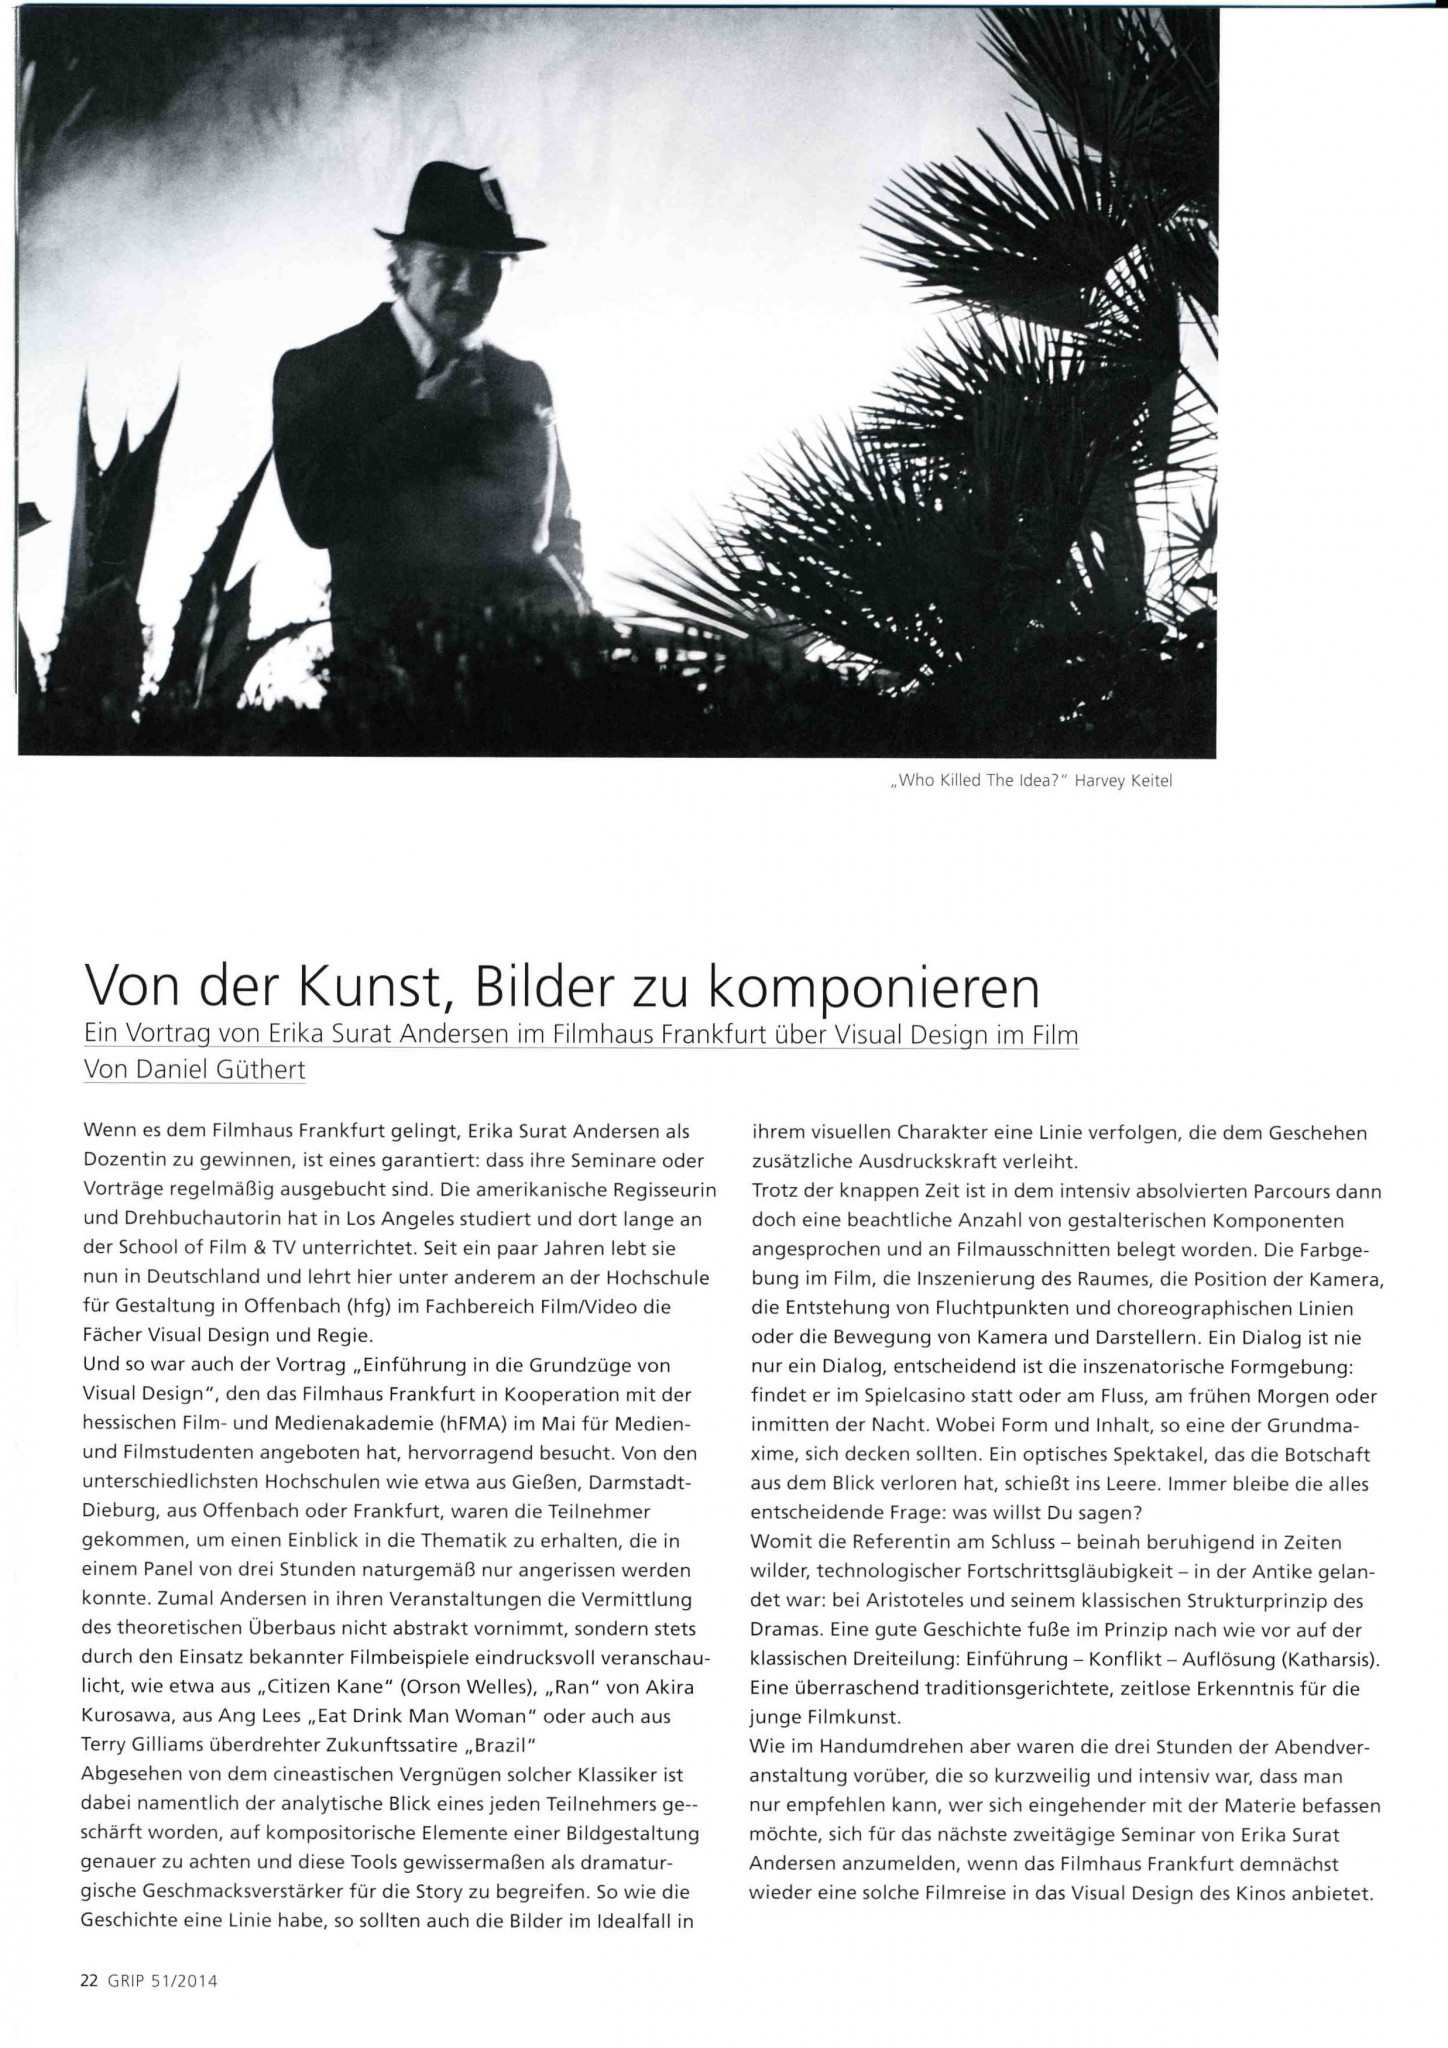 Article from GRIP about Erika Andersen's Visual Design seminar